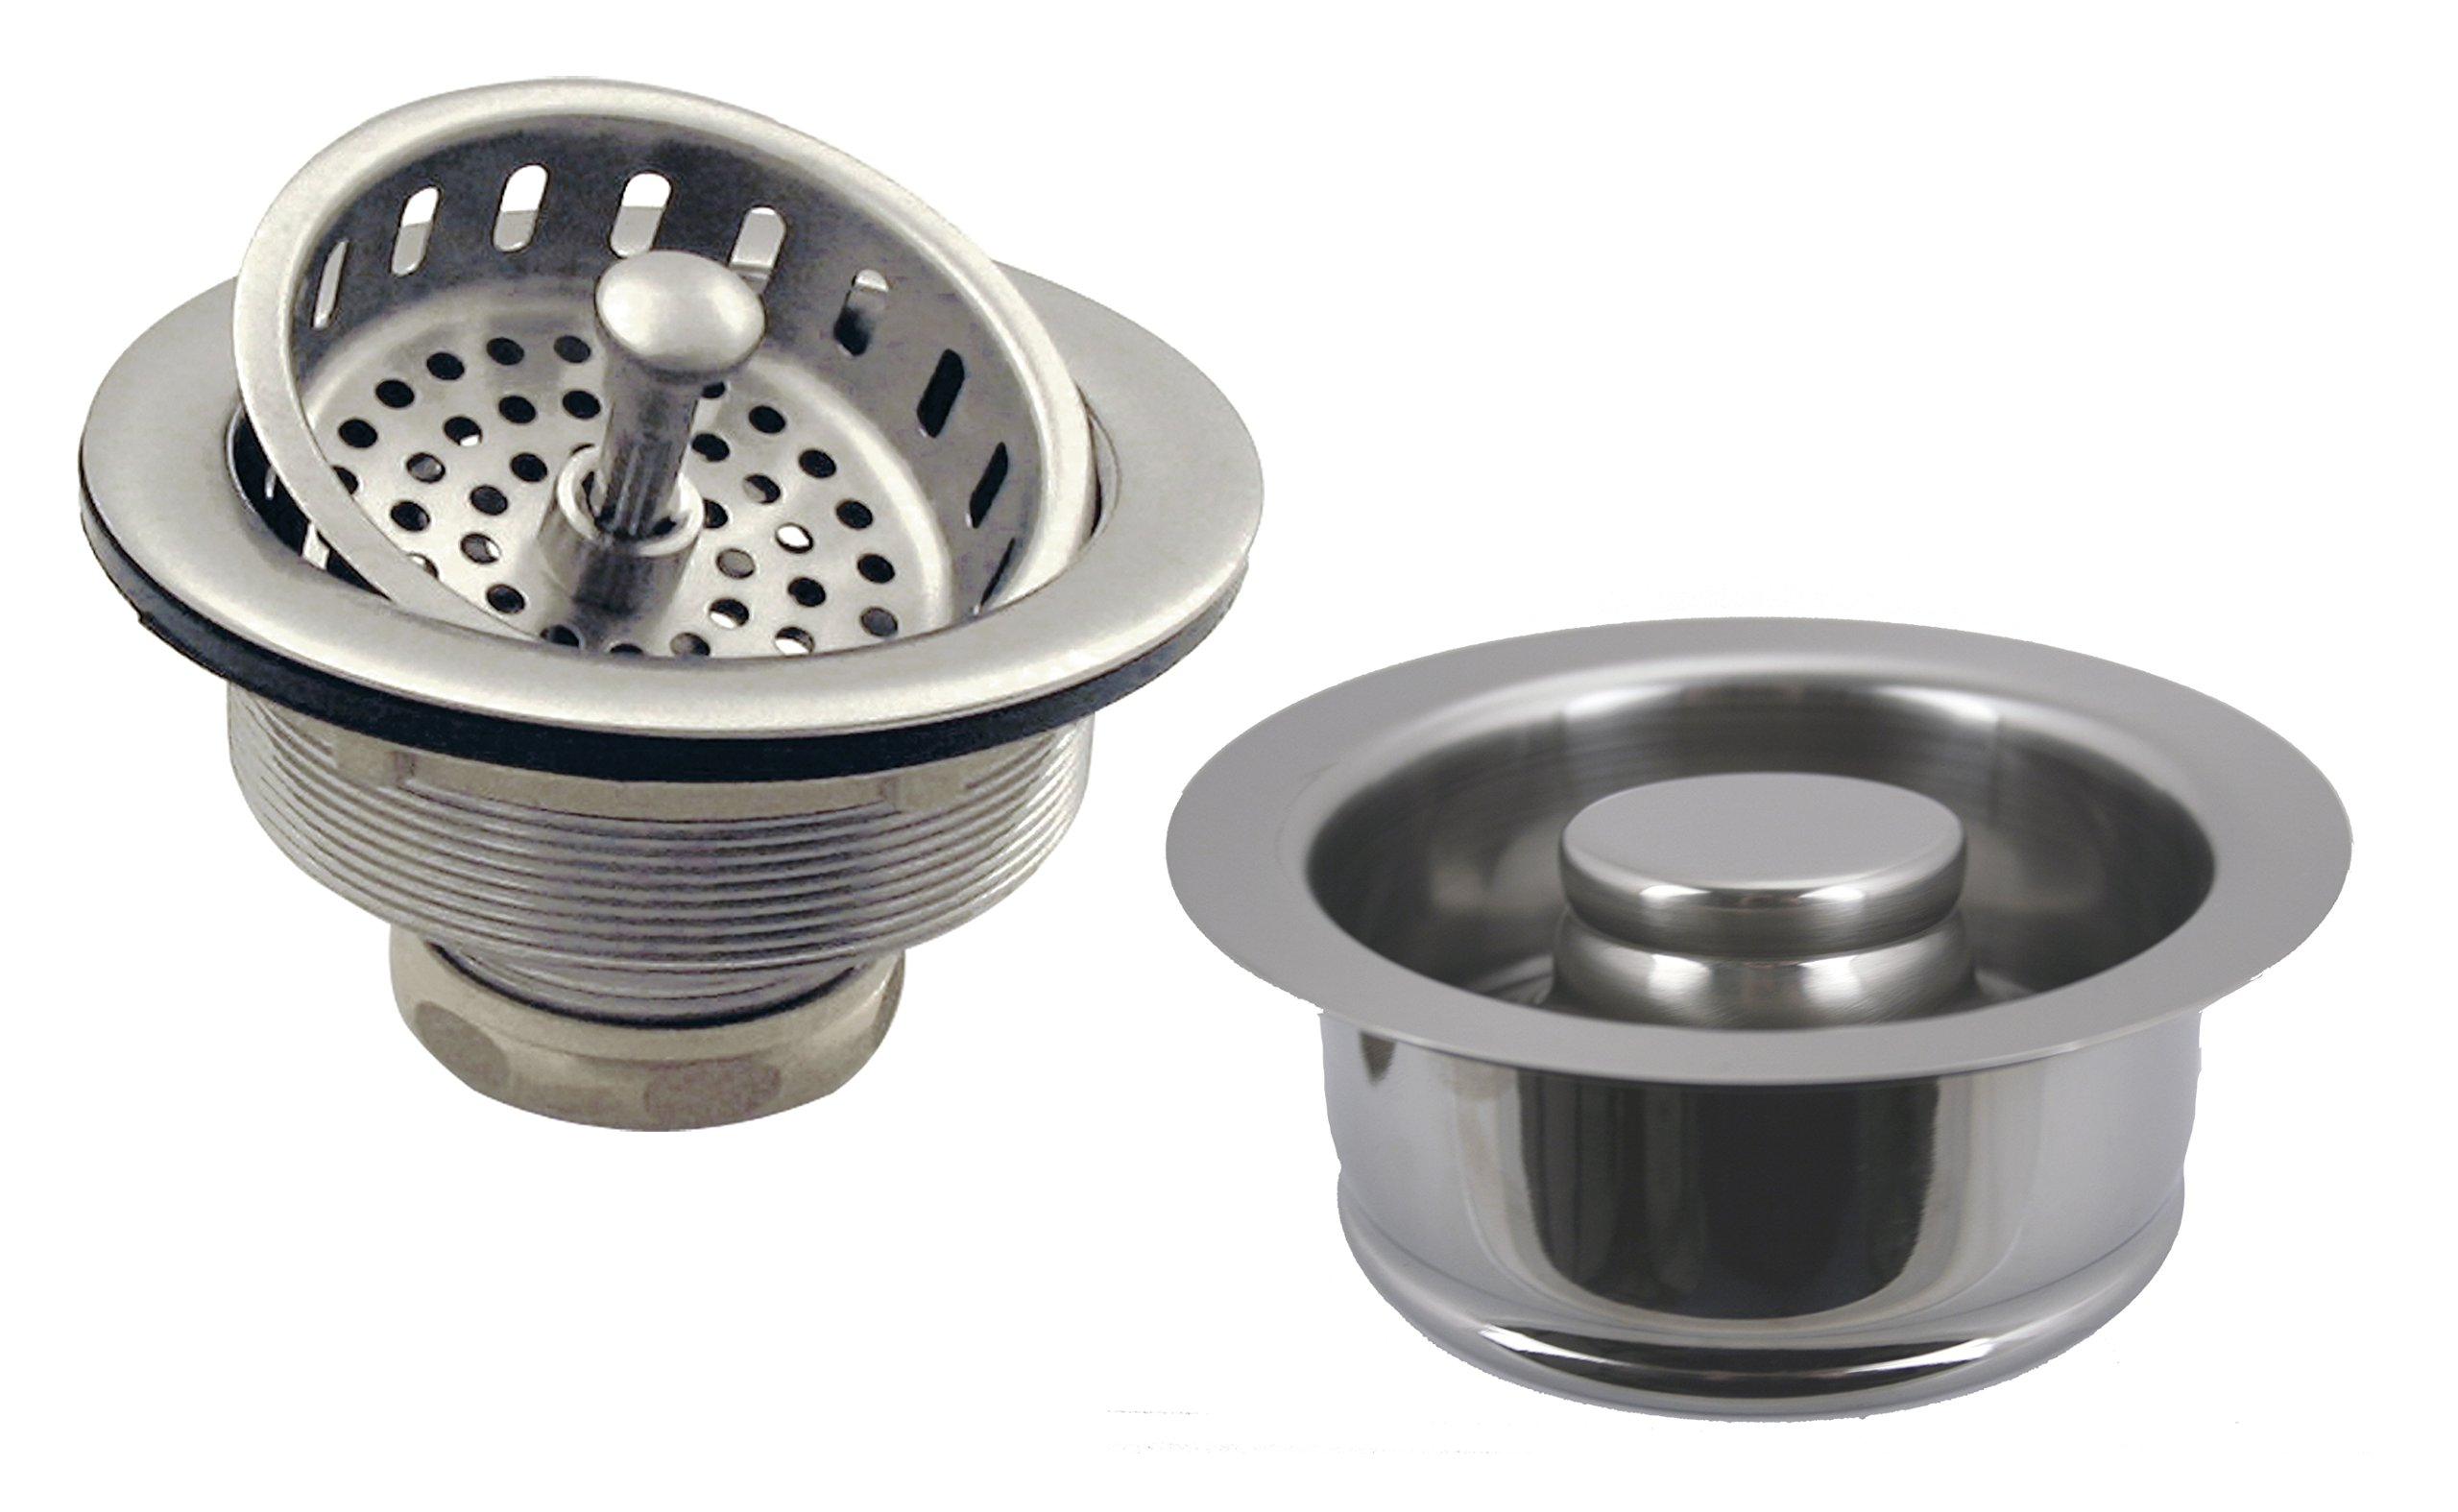 Westbrass Post Style Large Kitchen Basket Strainer with InSinkErator Style Disposal Flange and Stopper, Satin Nickel, D2165-07